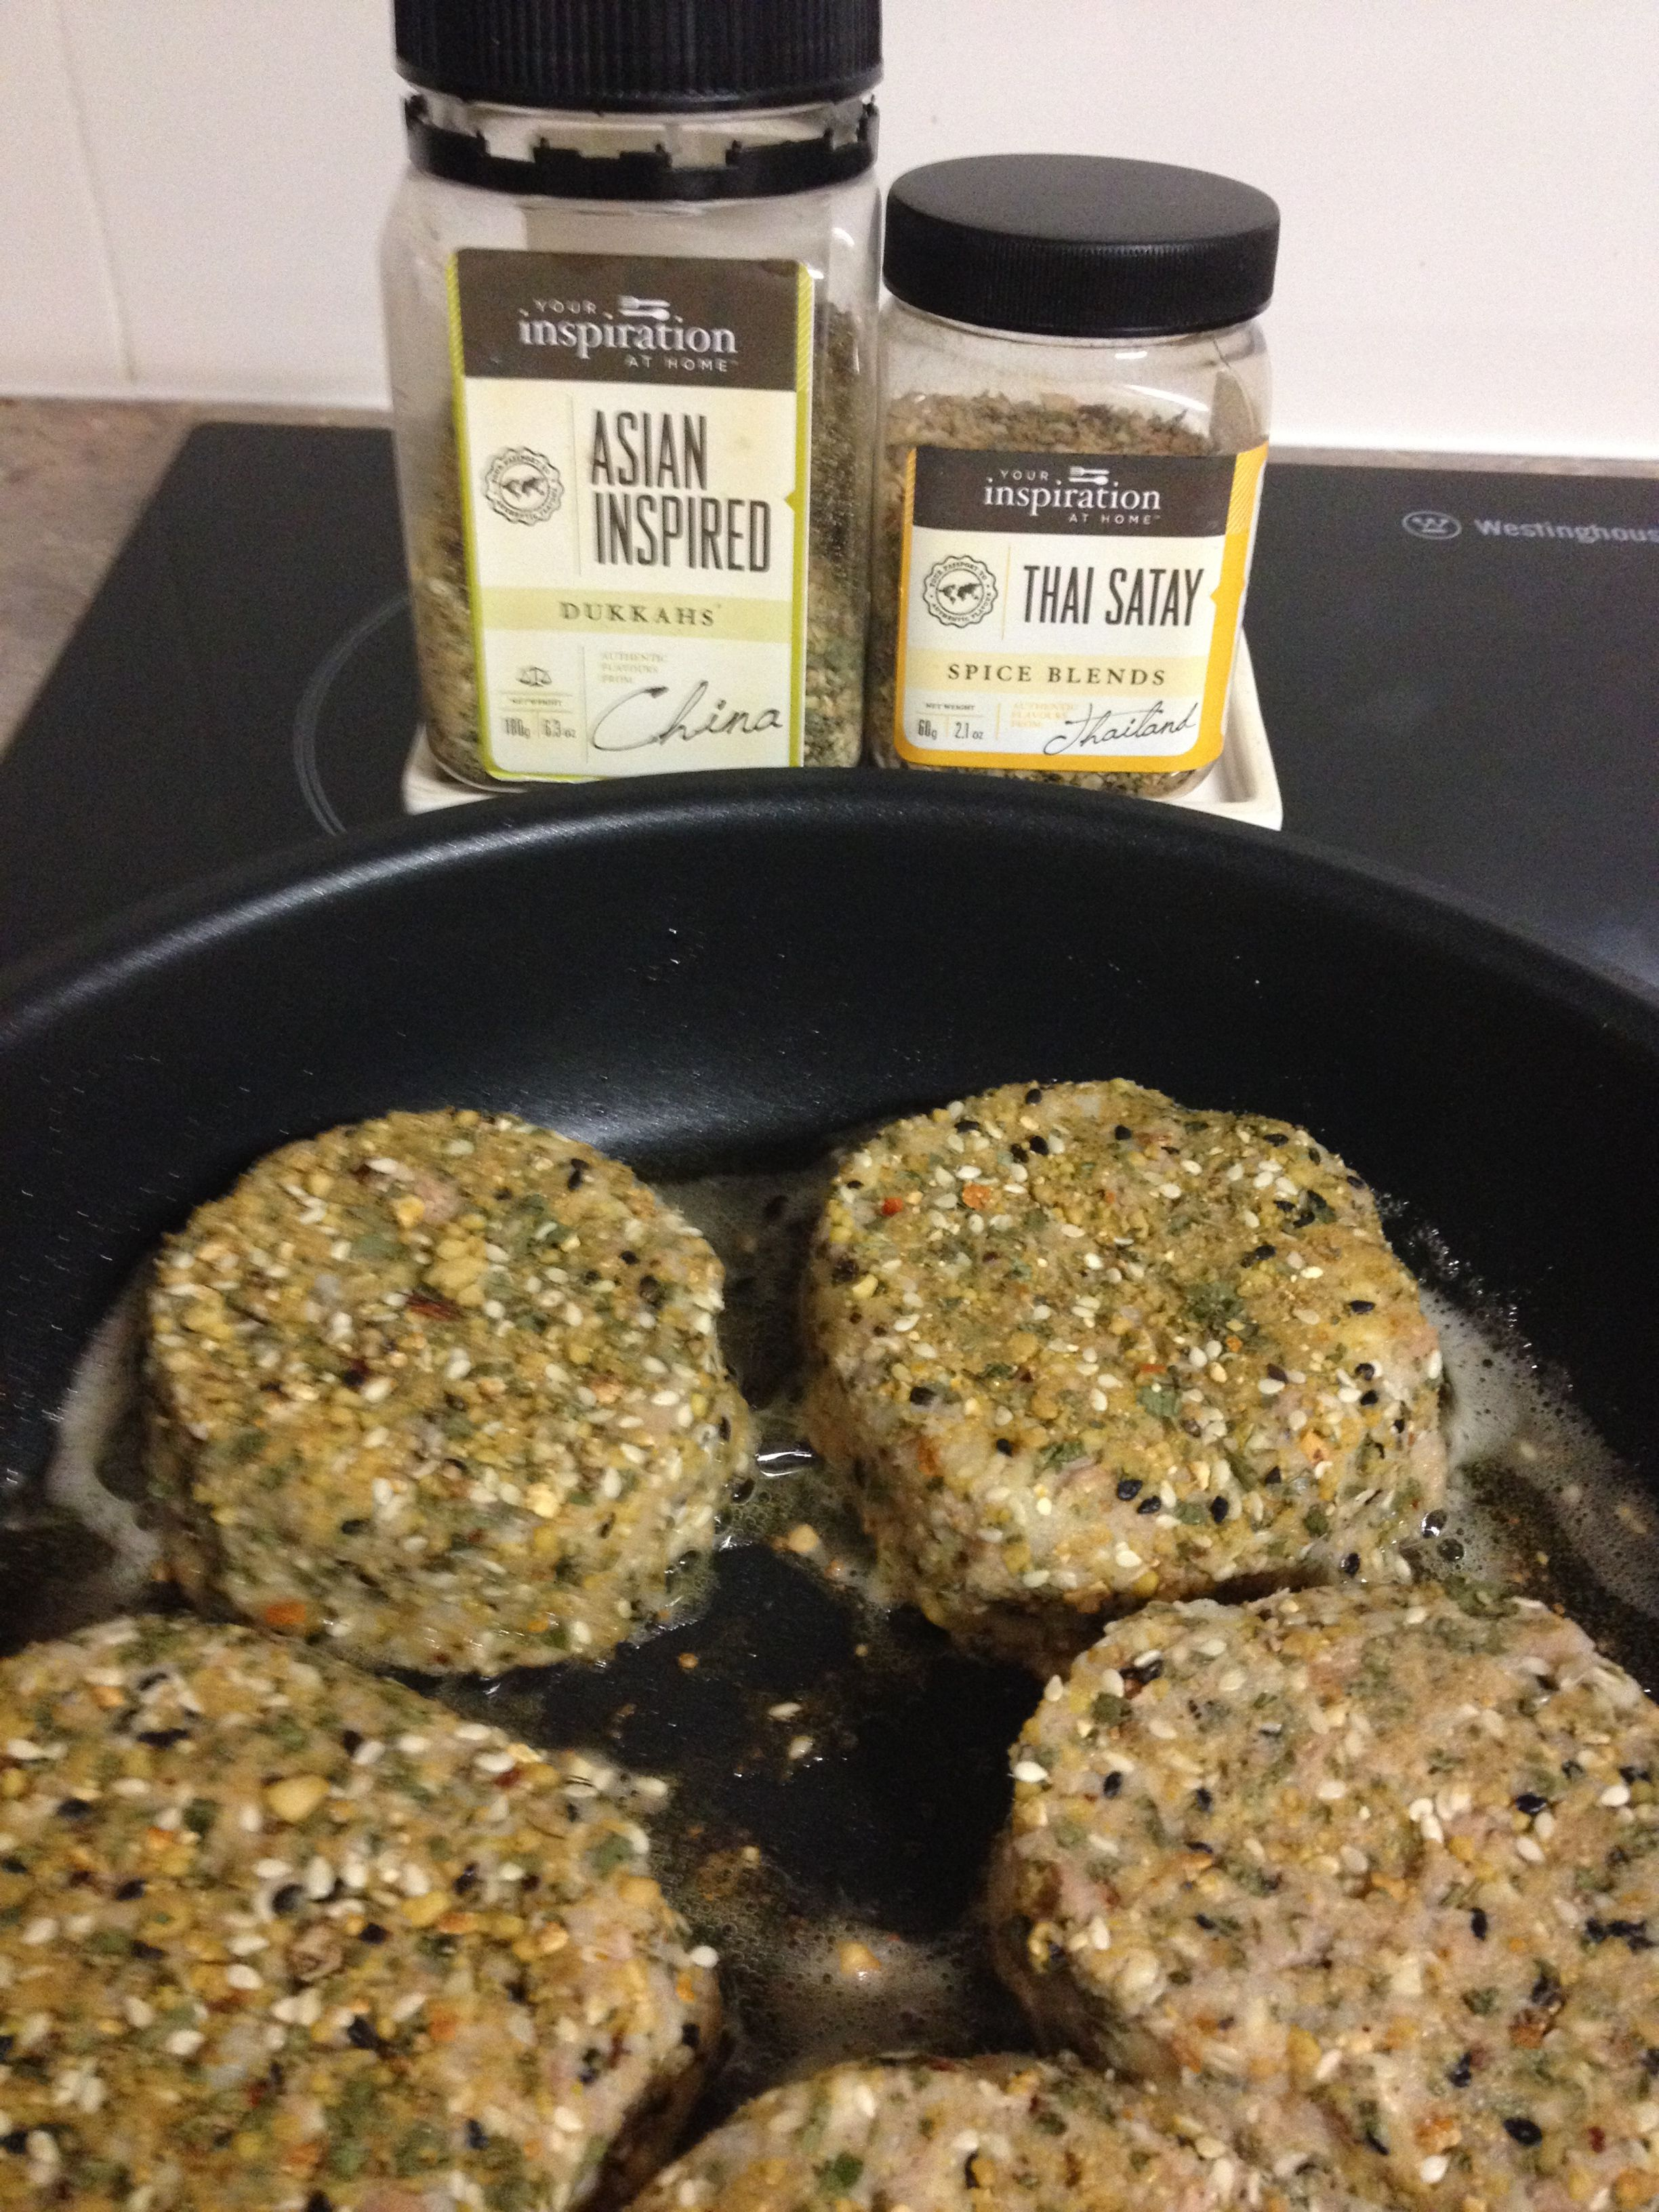 These I will freeze for later - YIAH Thai Satay Fish cakes with YIAH Asian Inspired Dukkah